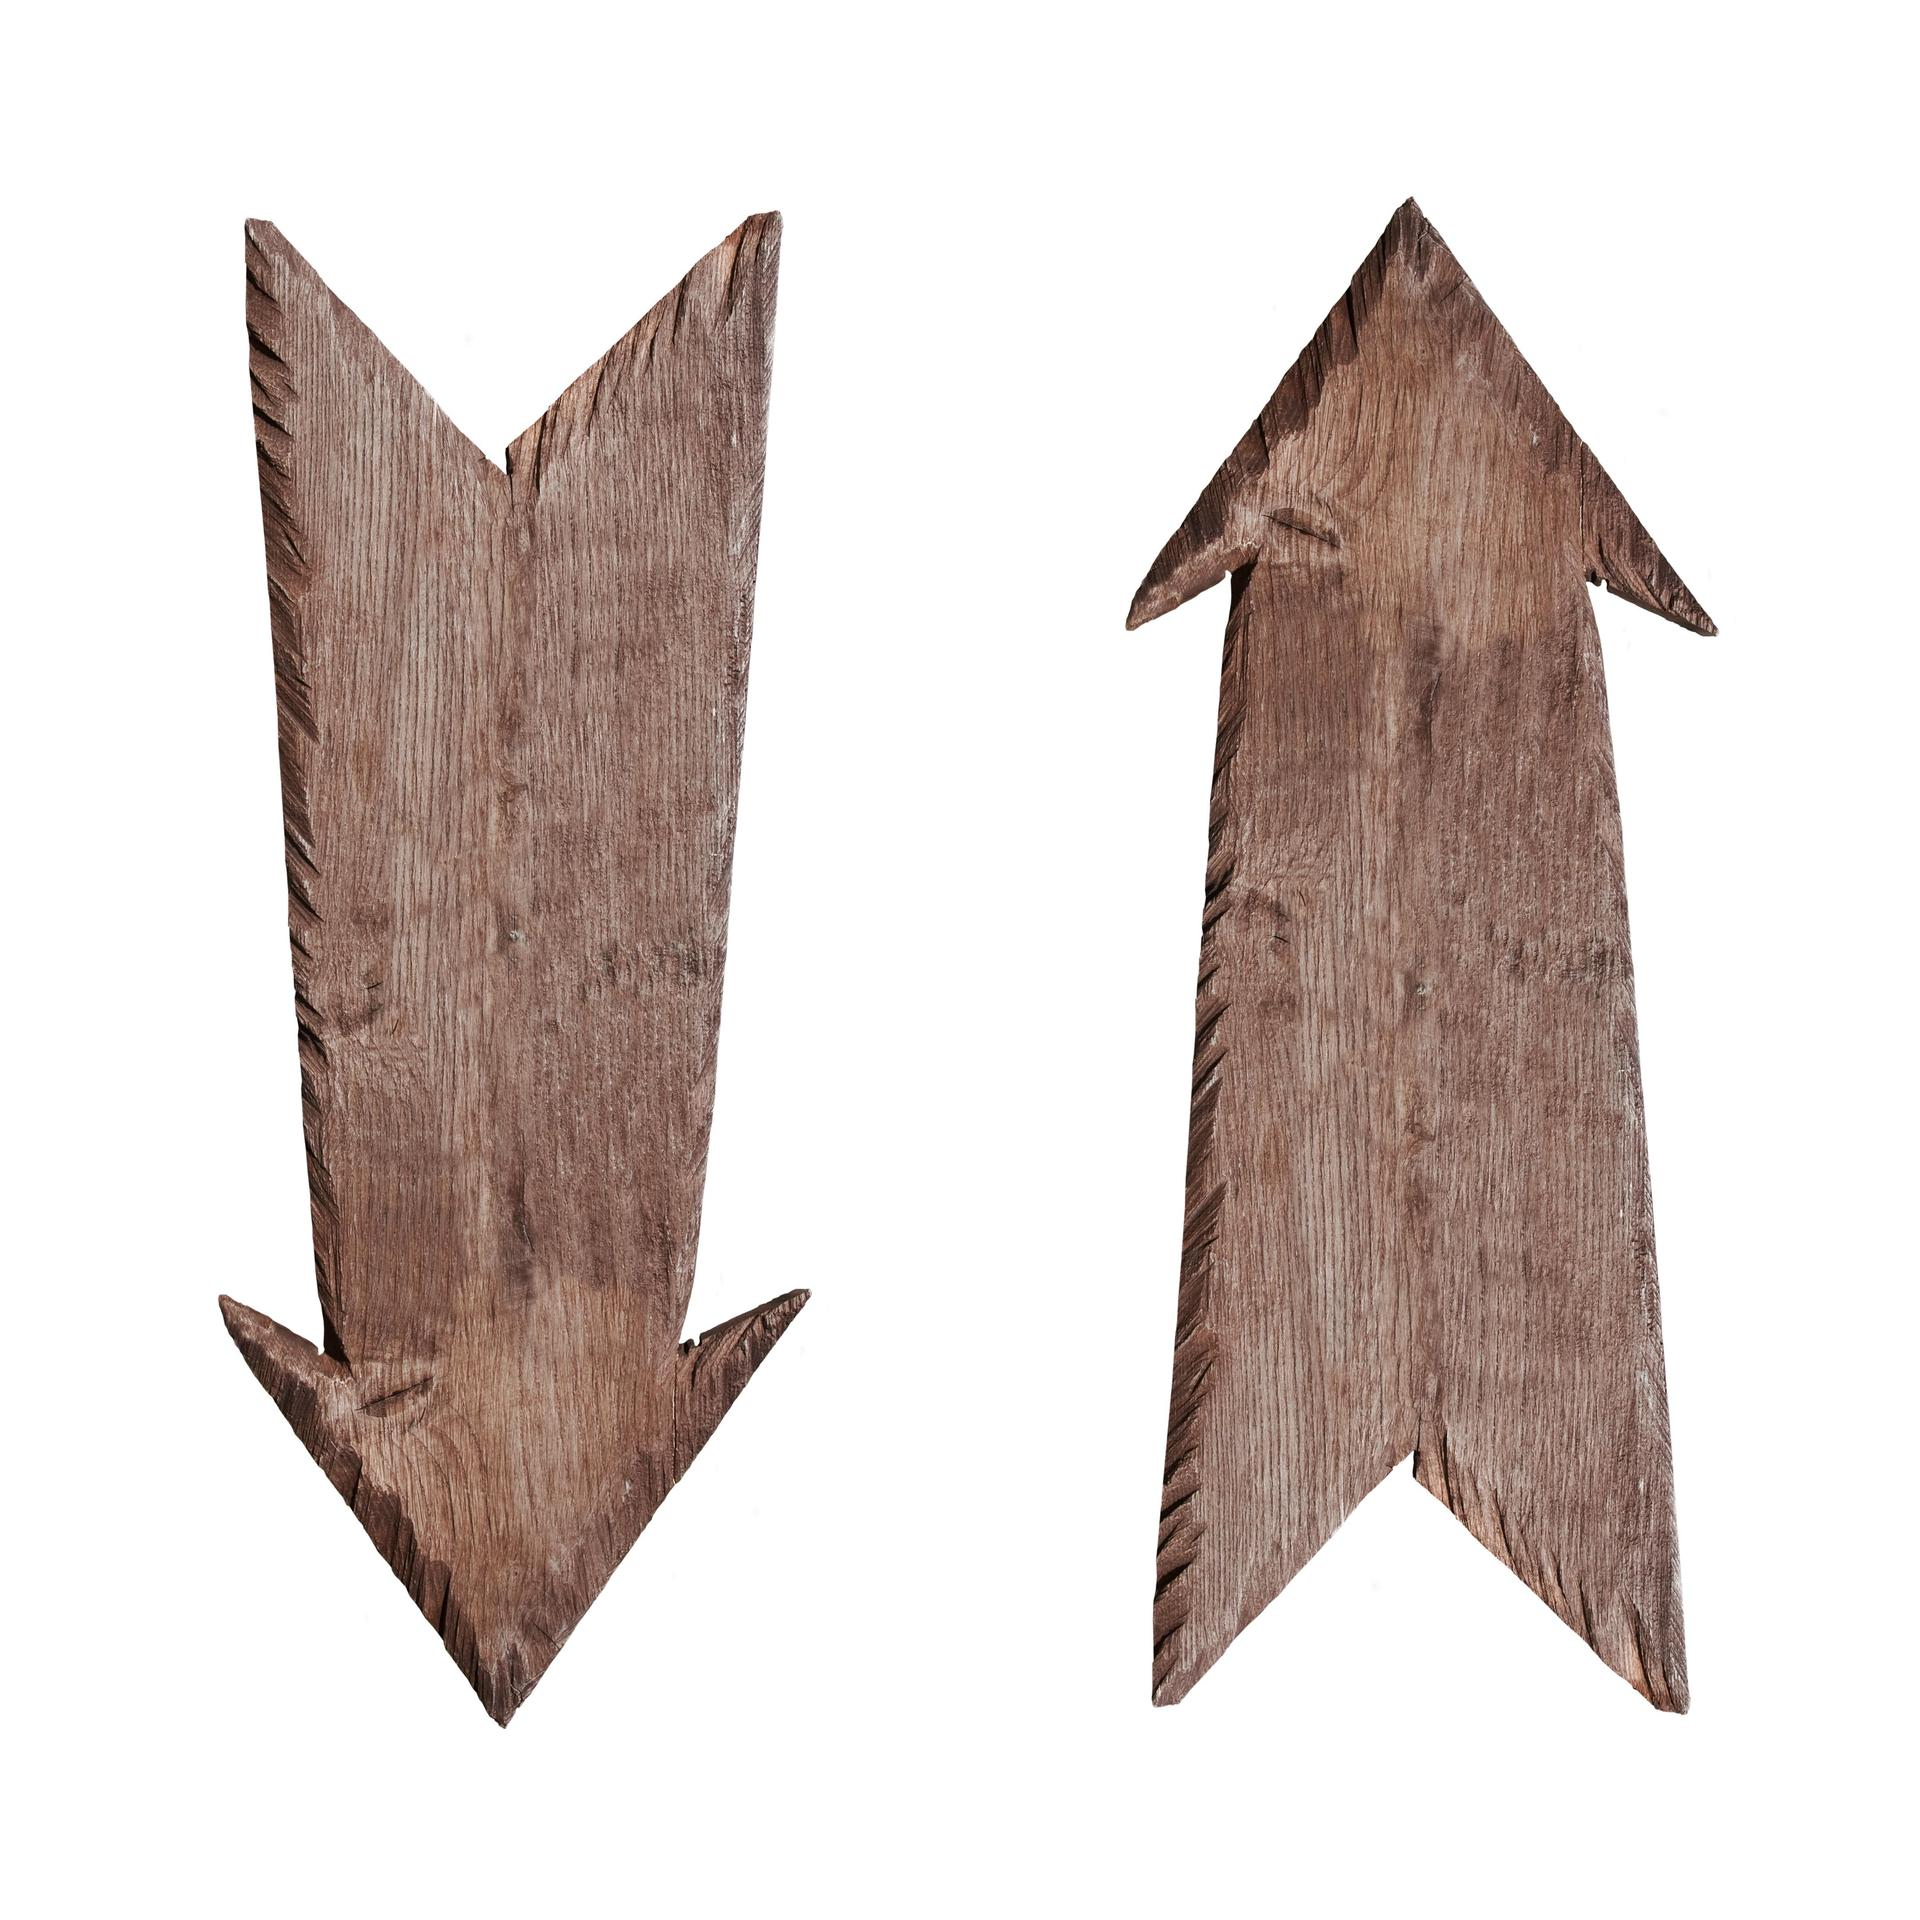 Wooden arrows pointing in opposite directions